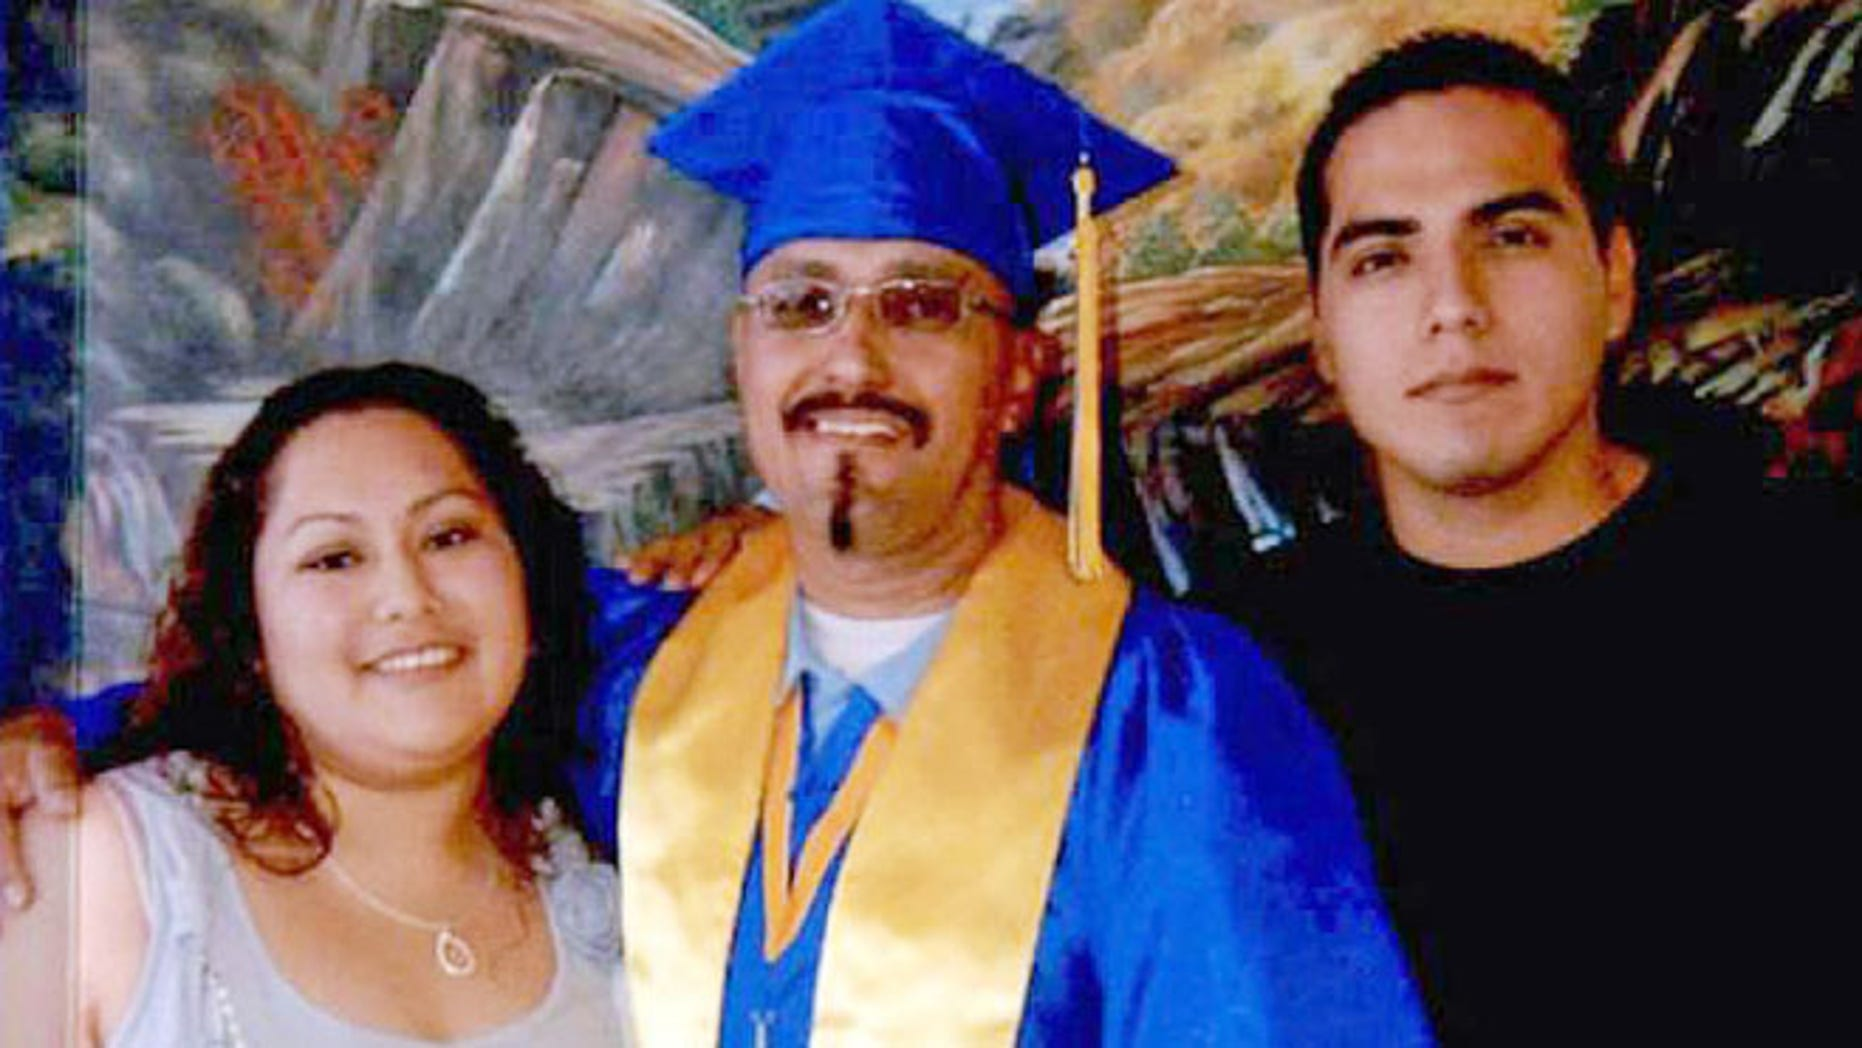 This December 2013 photo provided by the California Innocence Project shows Luis Vargas, center, with his daughter Crystal Vargas and son Daniel Vargas.